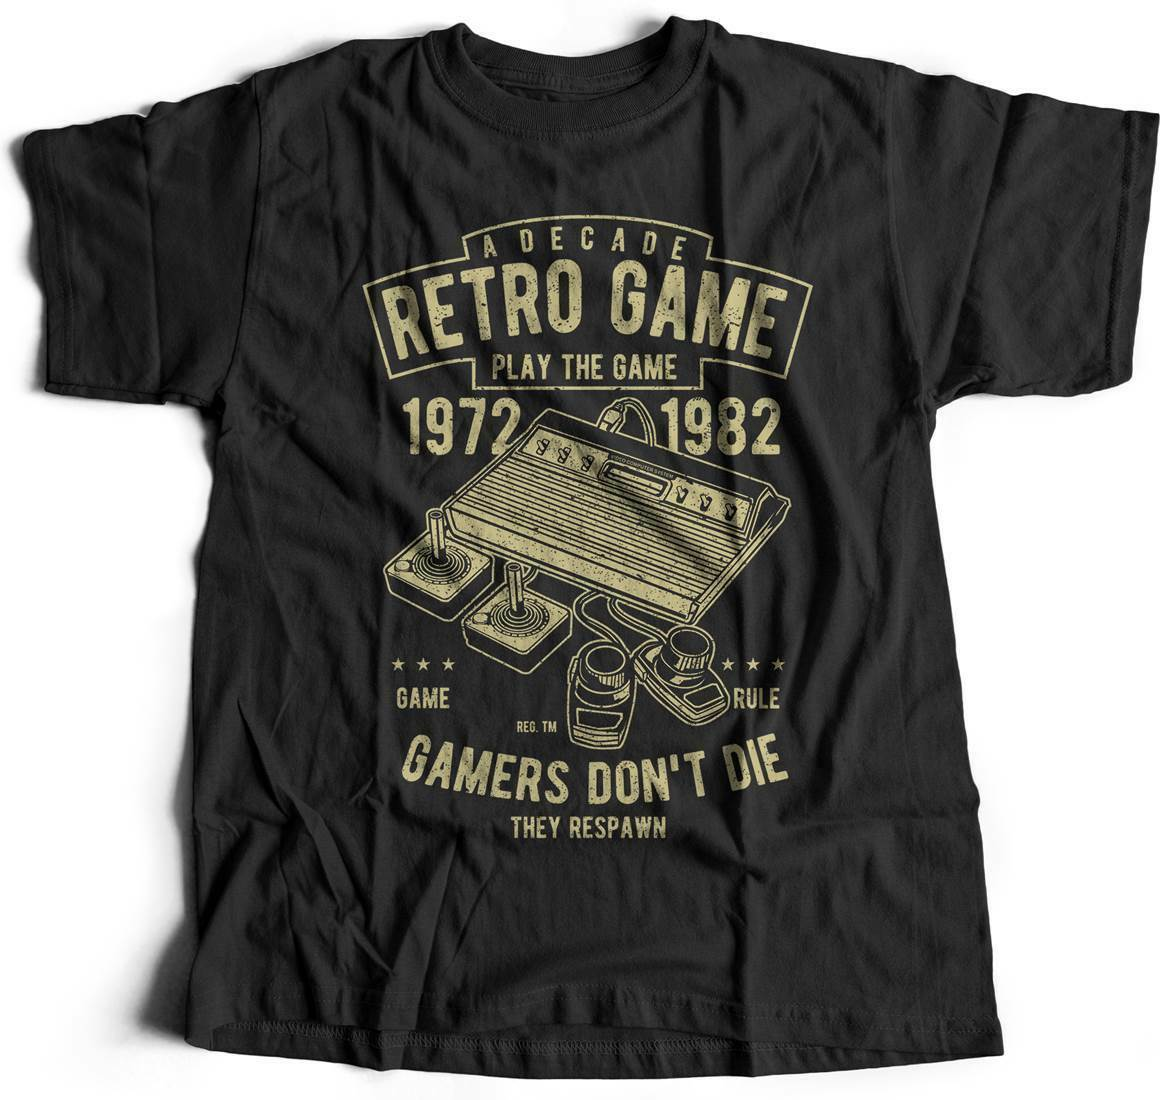 Retro Game Club Geek T-Shirt Legend Arcade Play Video Gamer Over Club Eat S A741 image